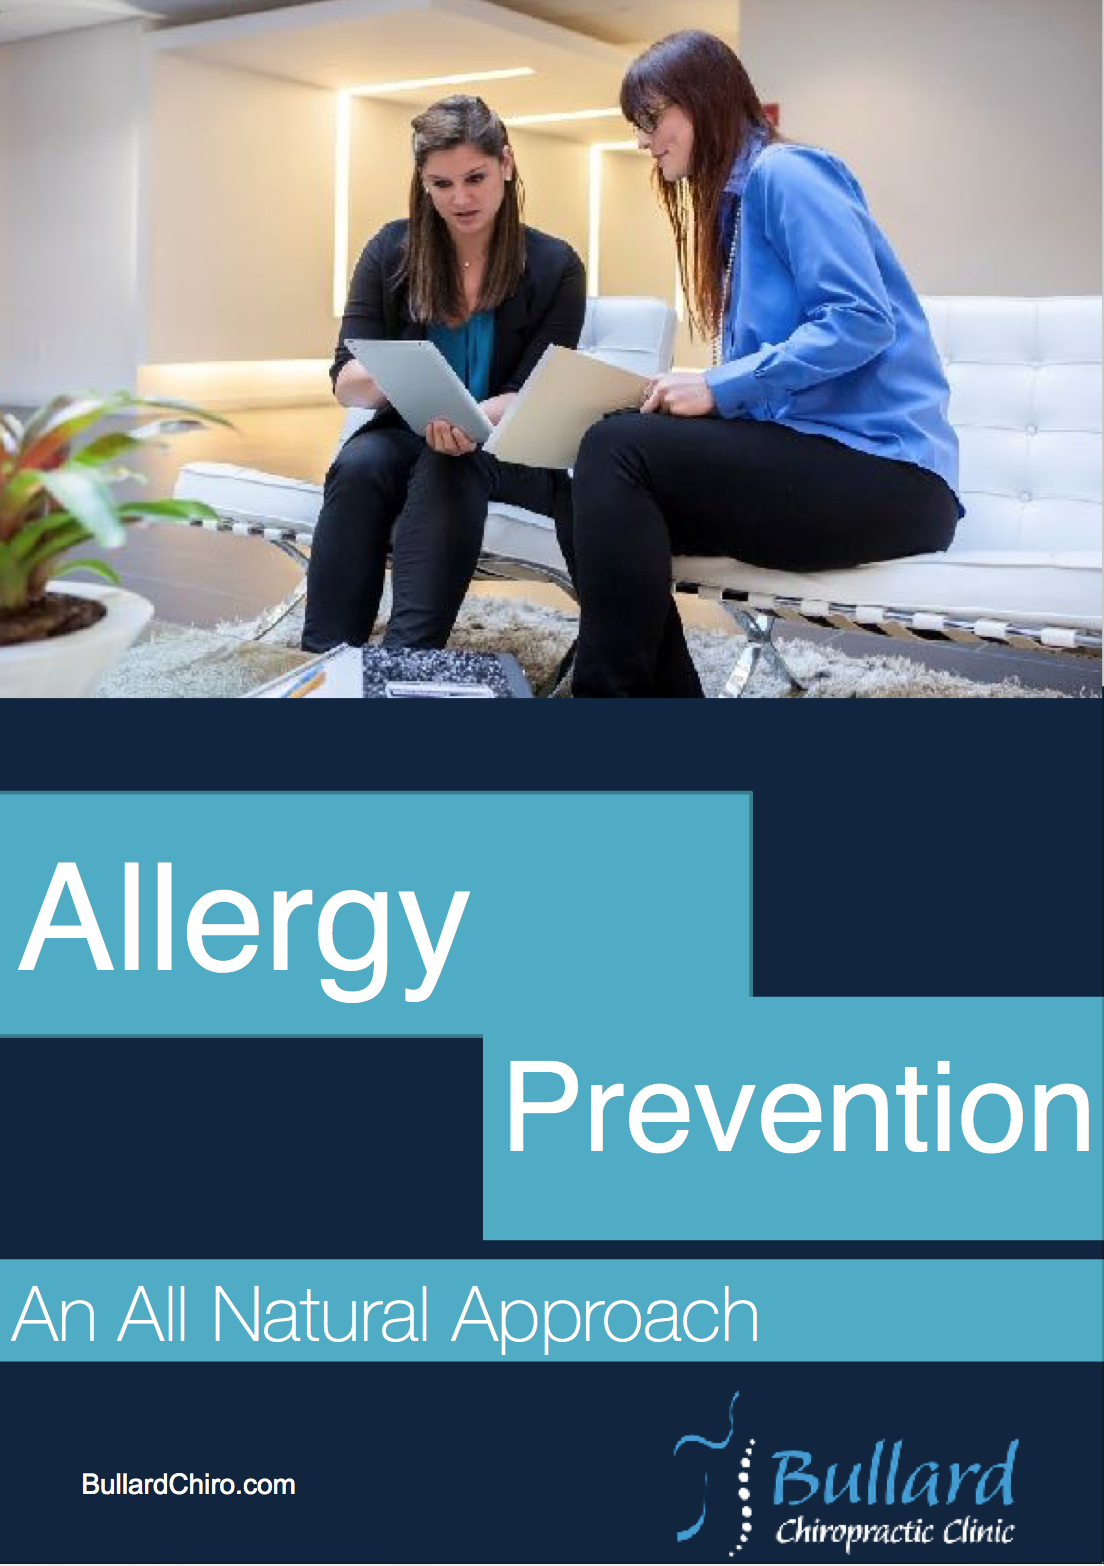 How Do You Deal With Allergy Relief Naturally?